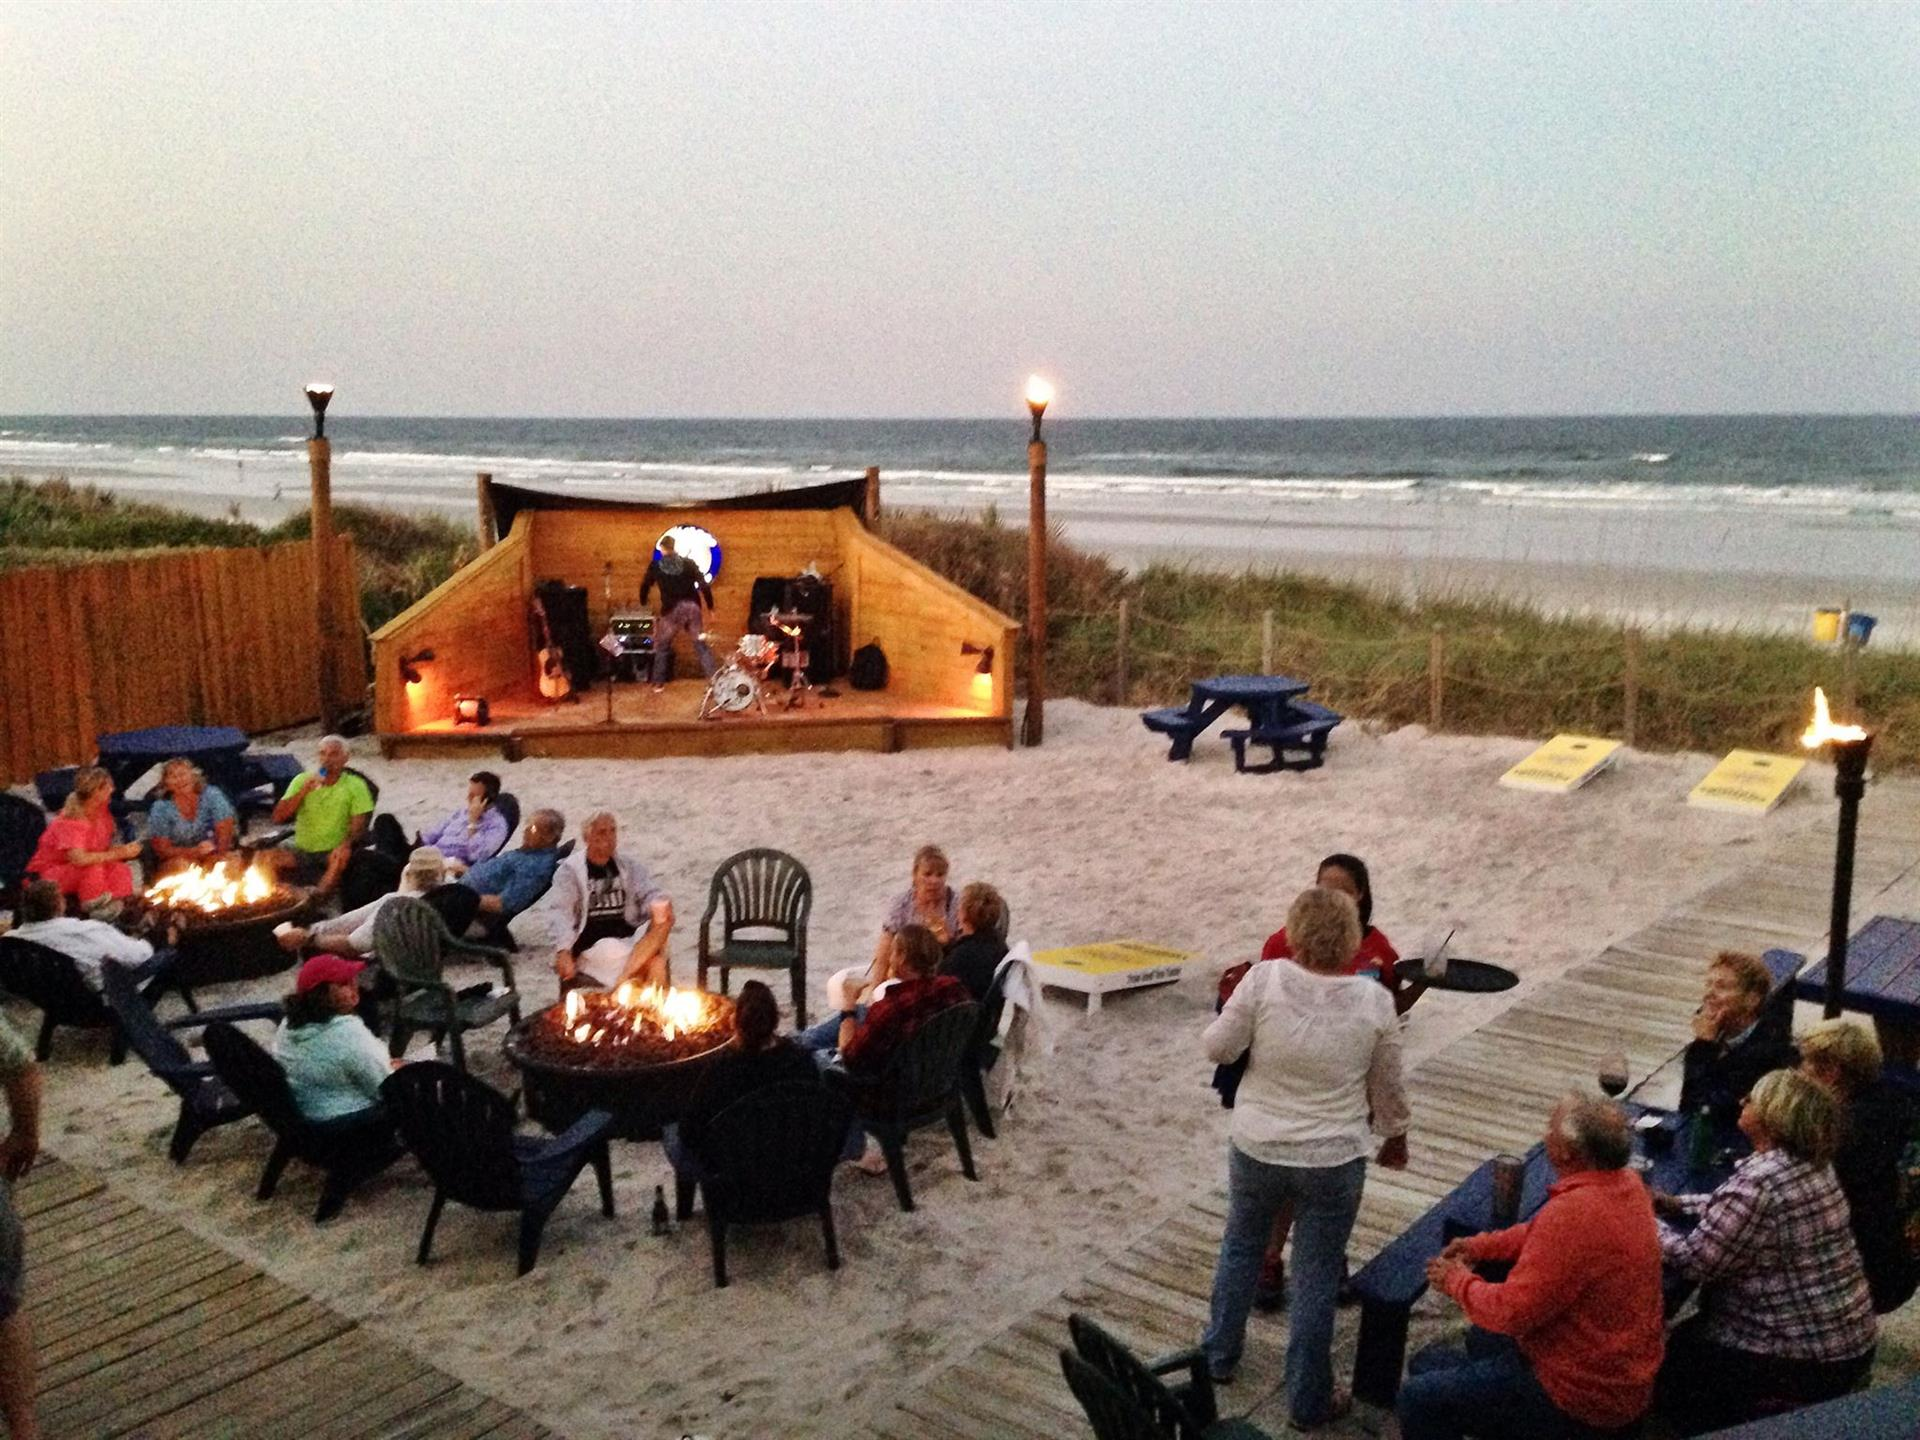 outdoor sand pit with small campfires, chairs and an area for a live band